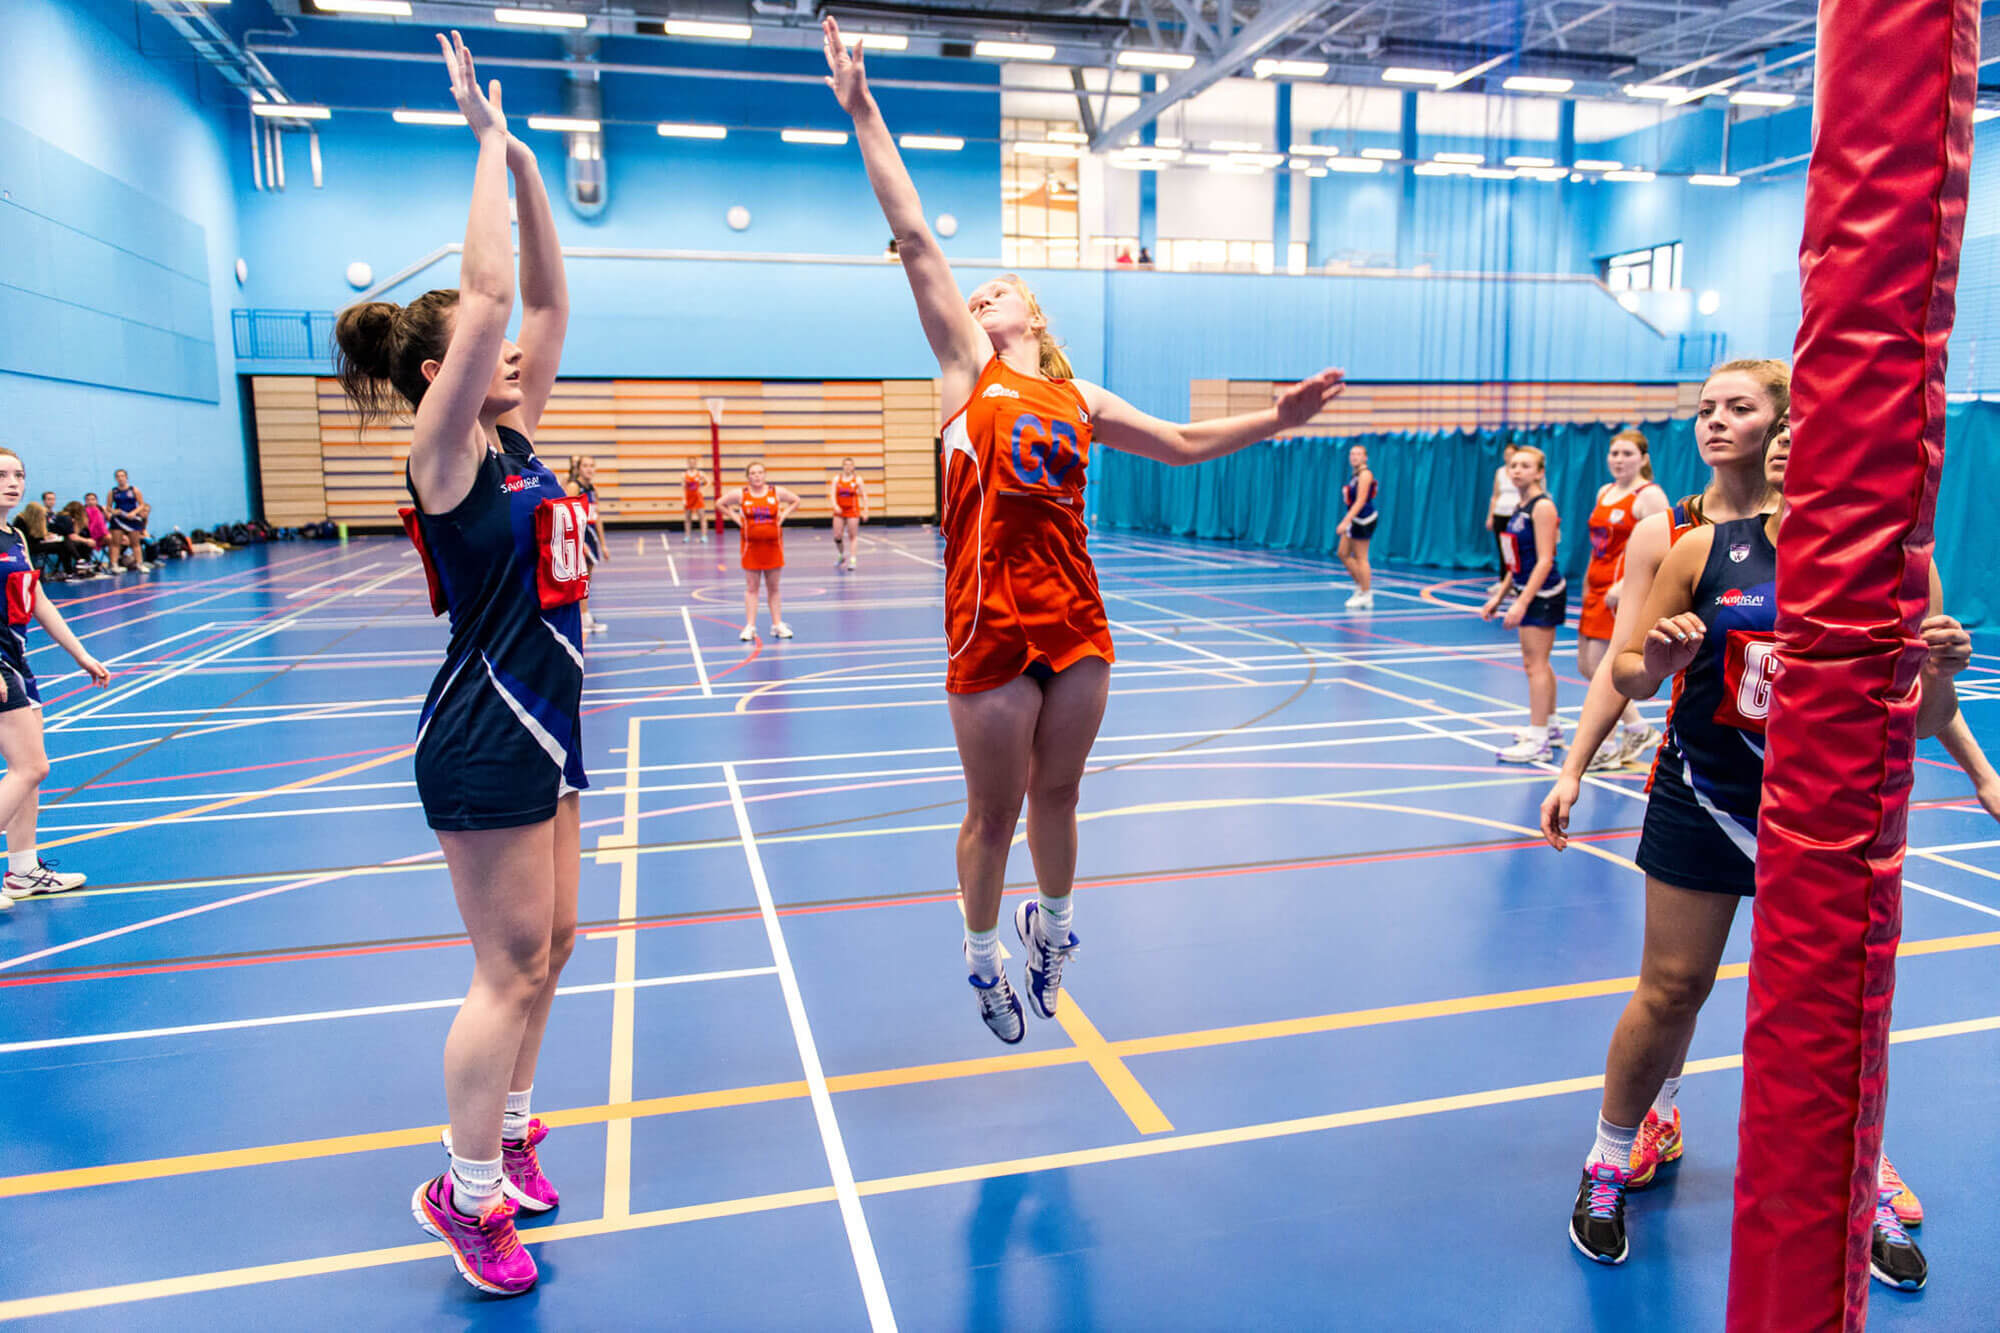 Women's Netball 2nd Team, playing in the Sports Centre at the University of Derby.